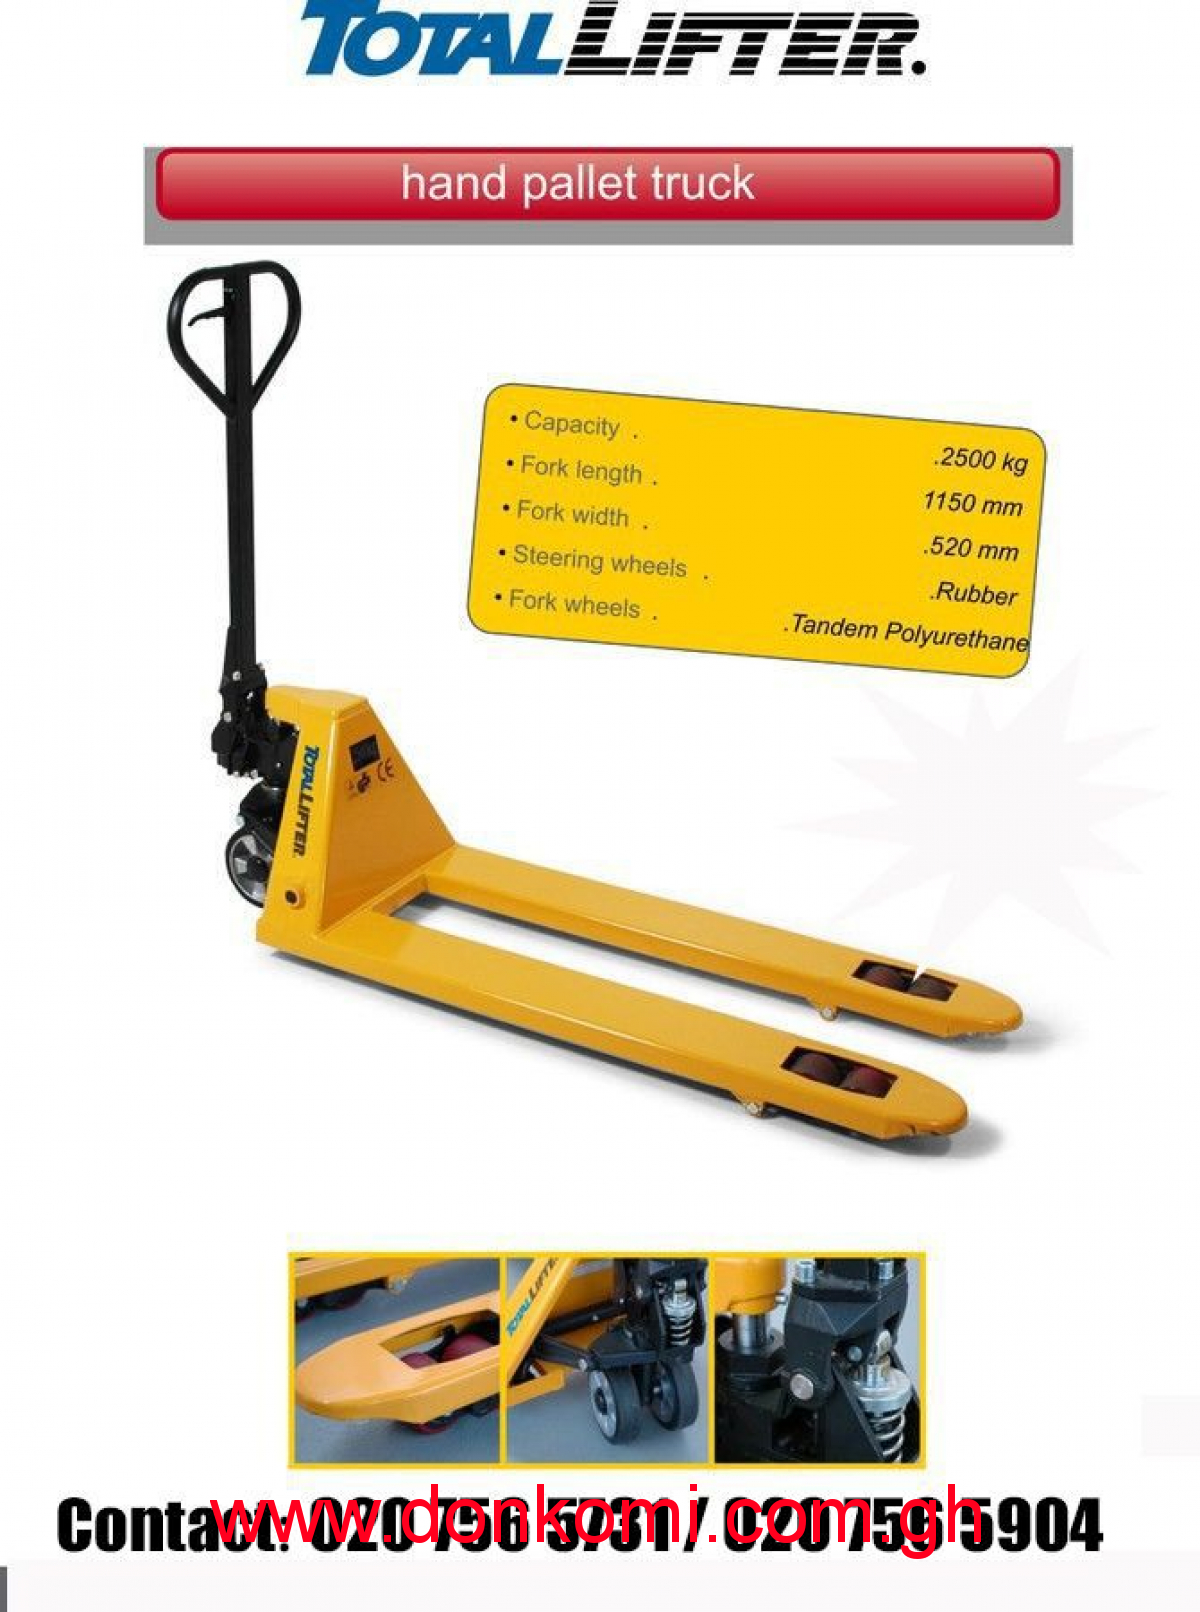 2500KG TOTAL LIFTER HAND PALLET JACK FOR SALE.